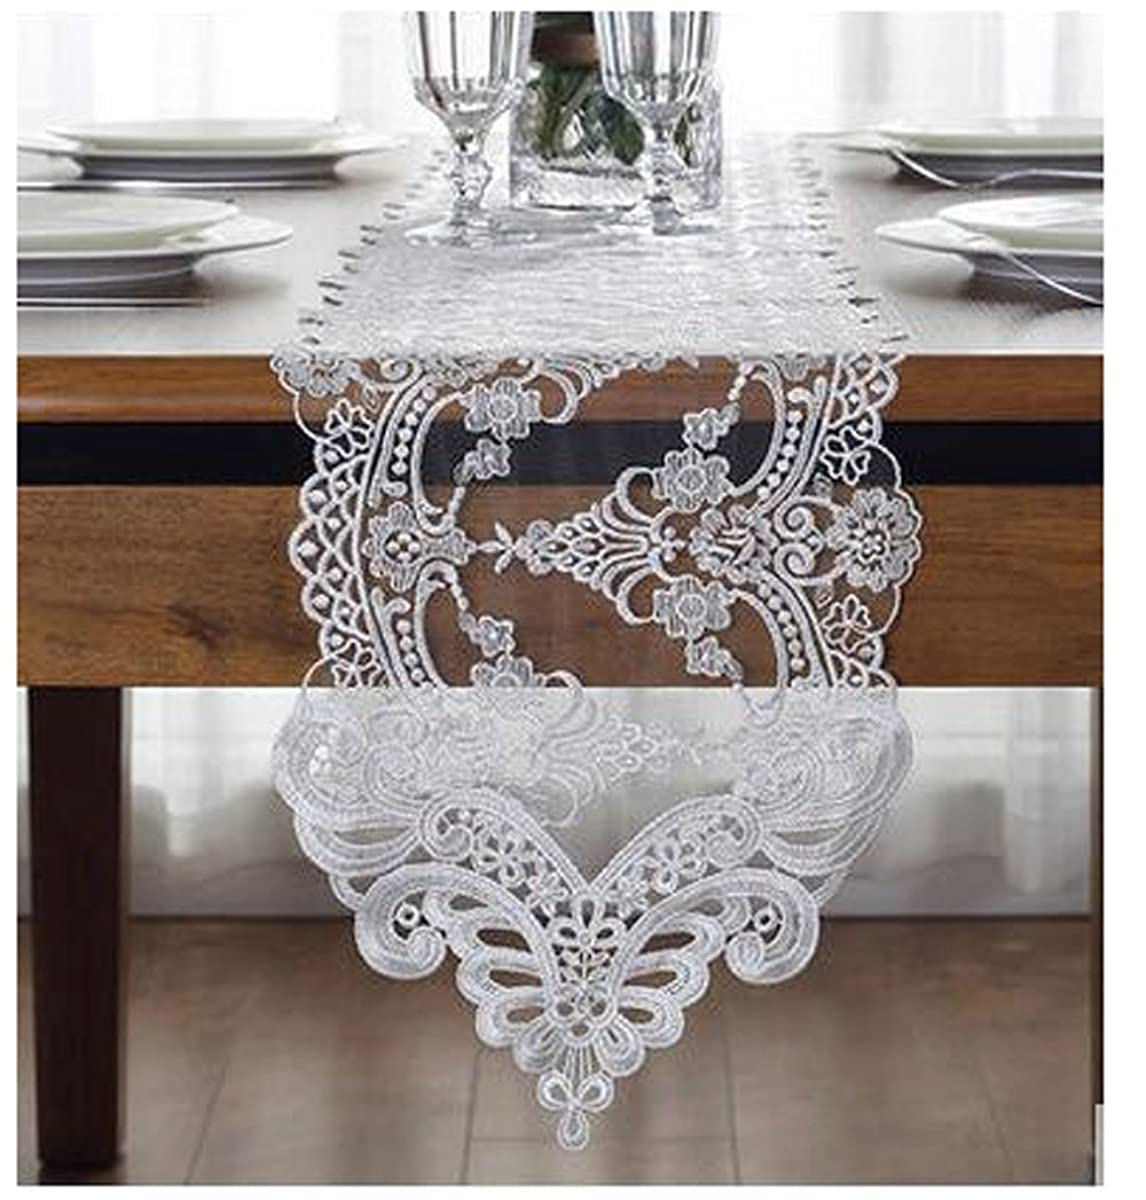 WSHINE Lace Table Runner And Dresser Scarf Embroidered Flower Tablecloth Party Home Decor Supplies (white, 10.2